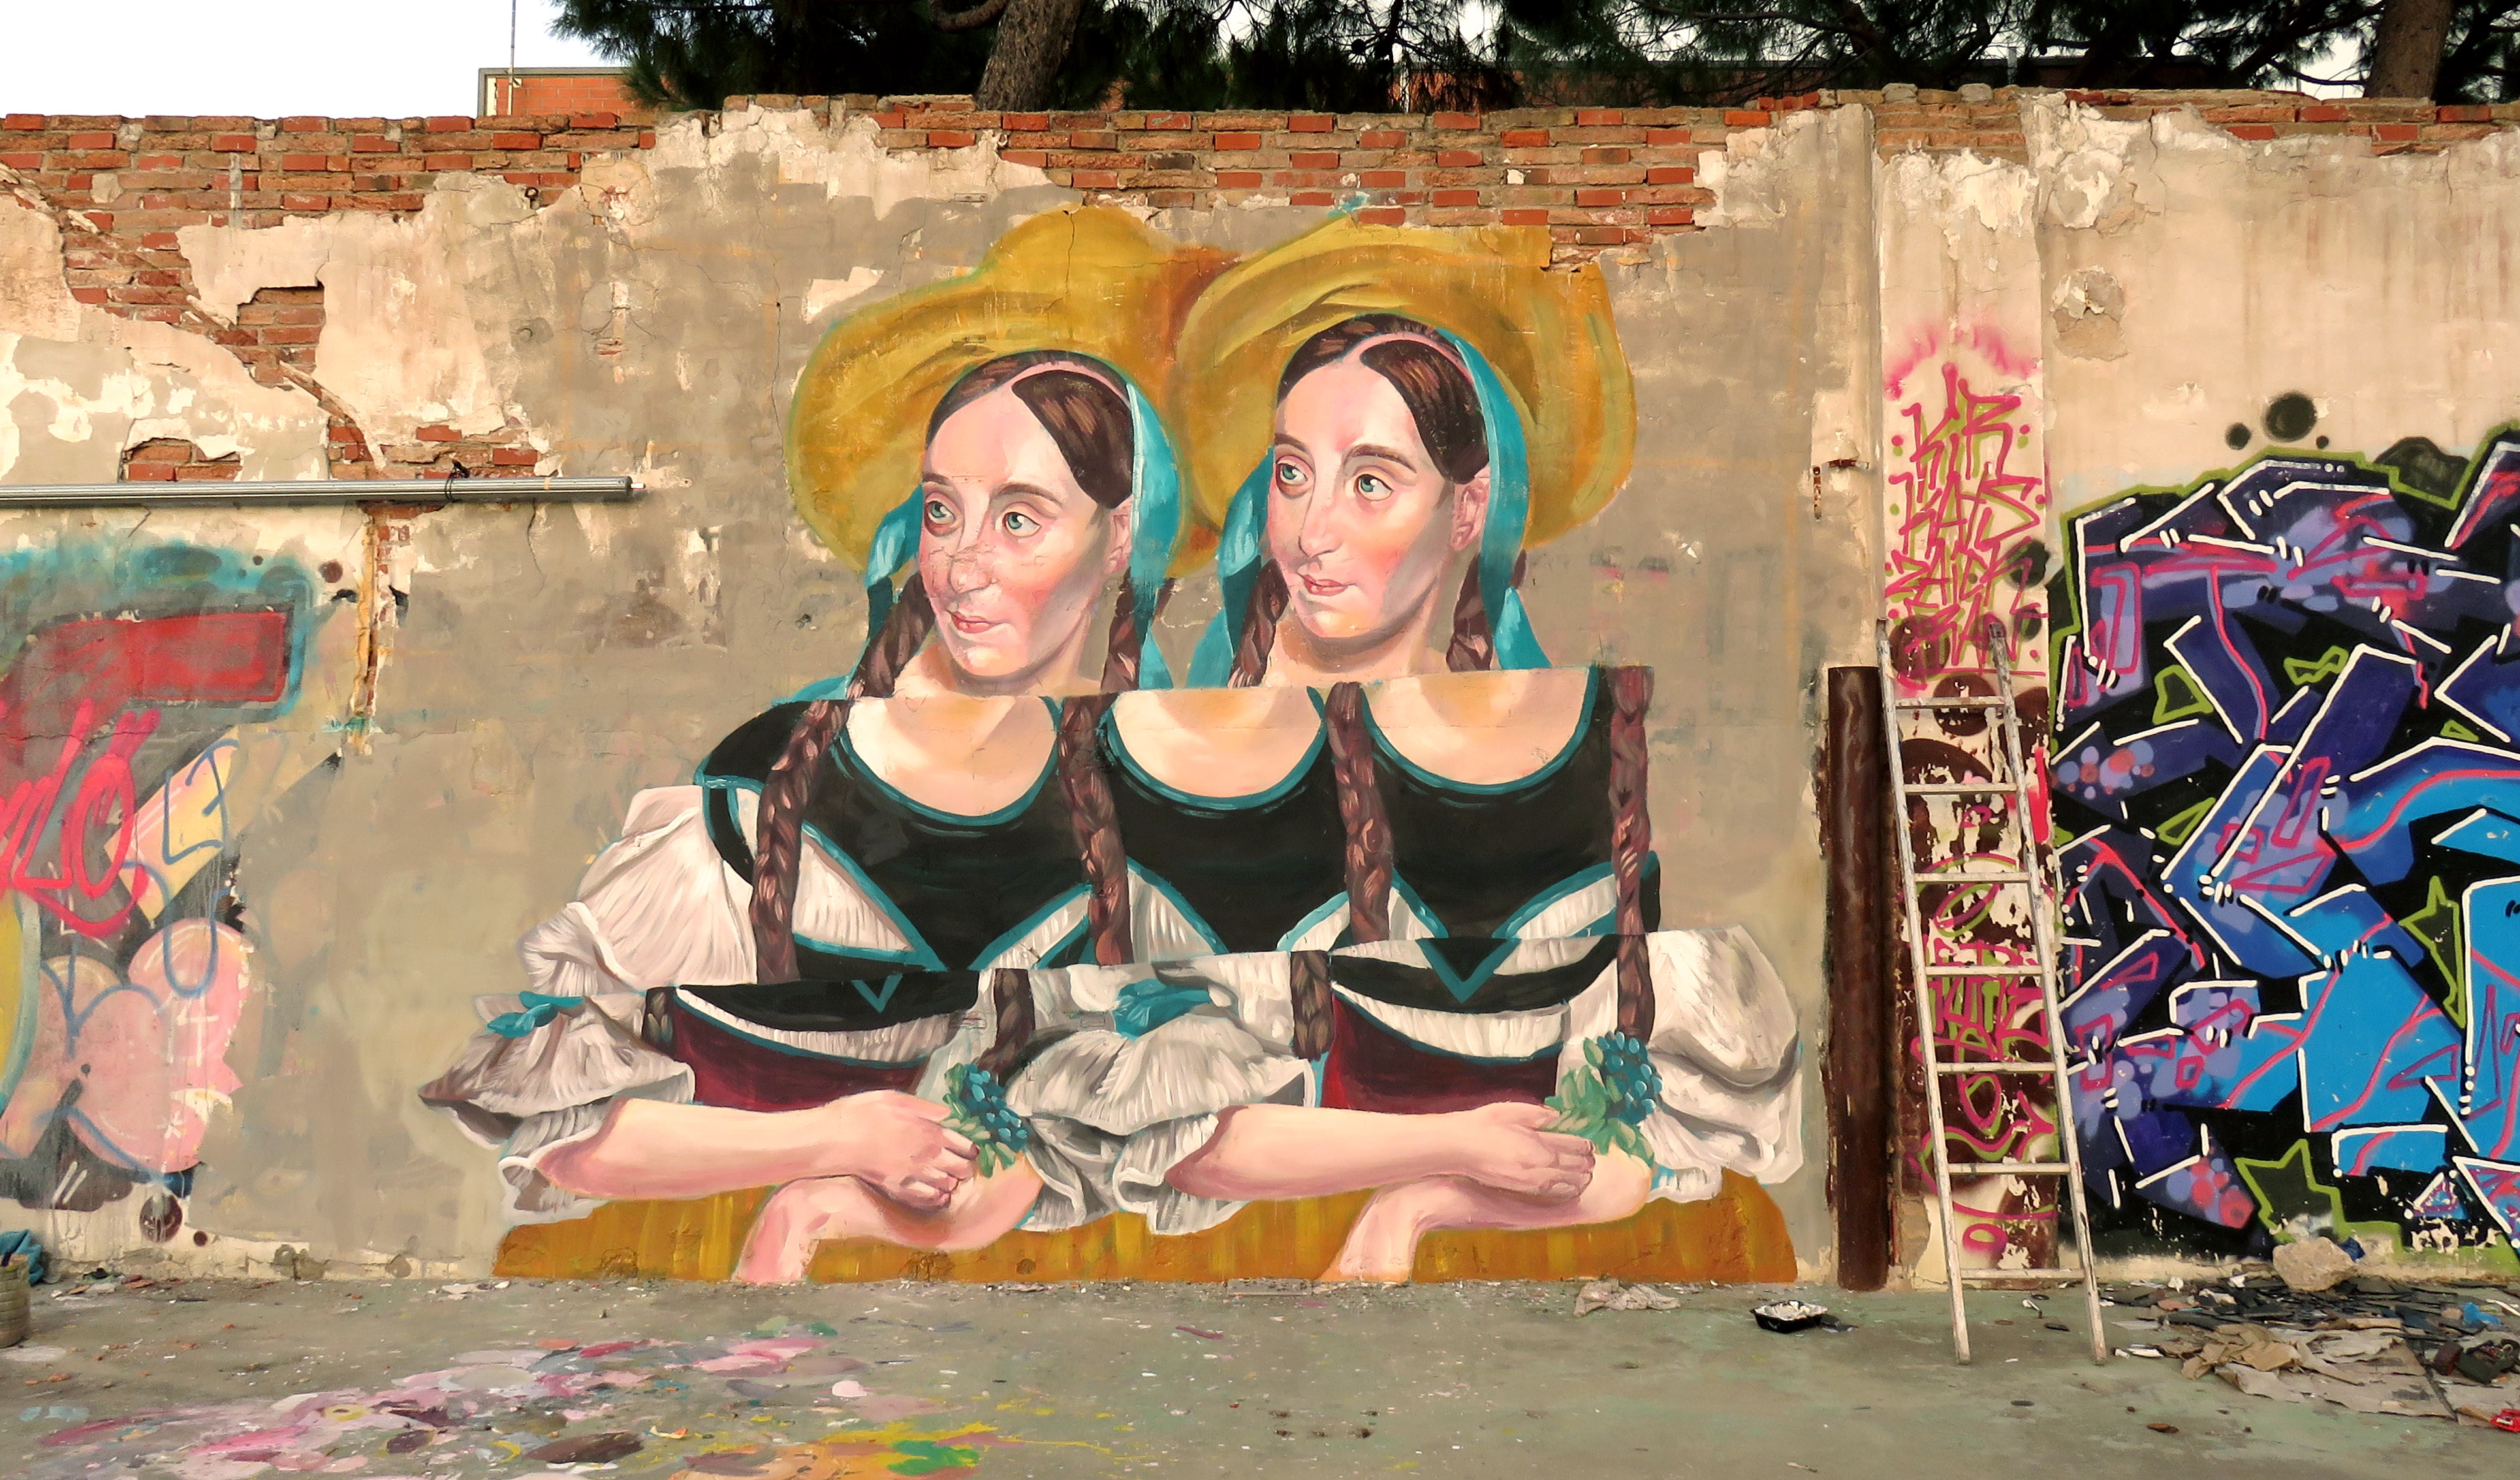 Bicefla Carla wall painted in Hospitalet